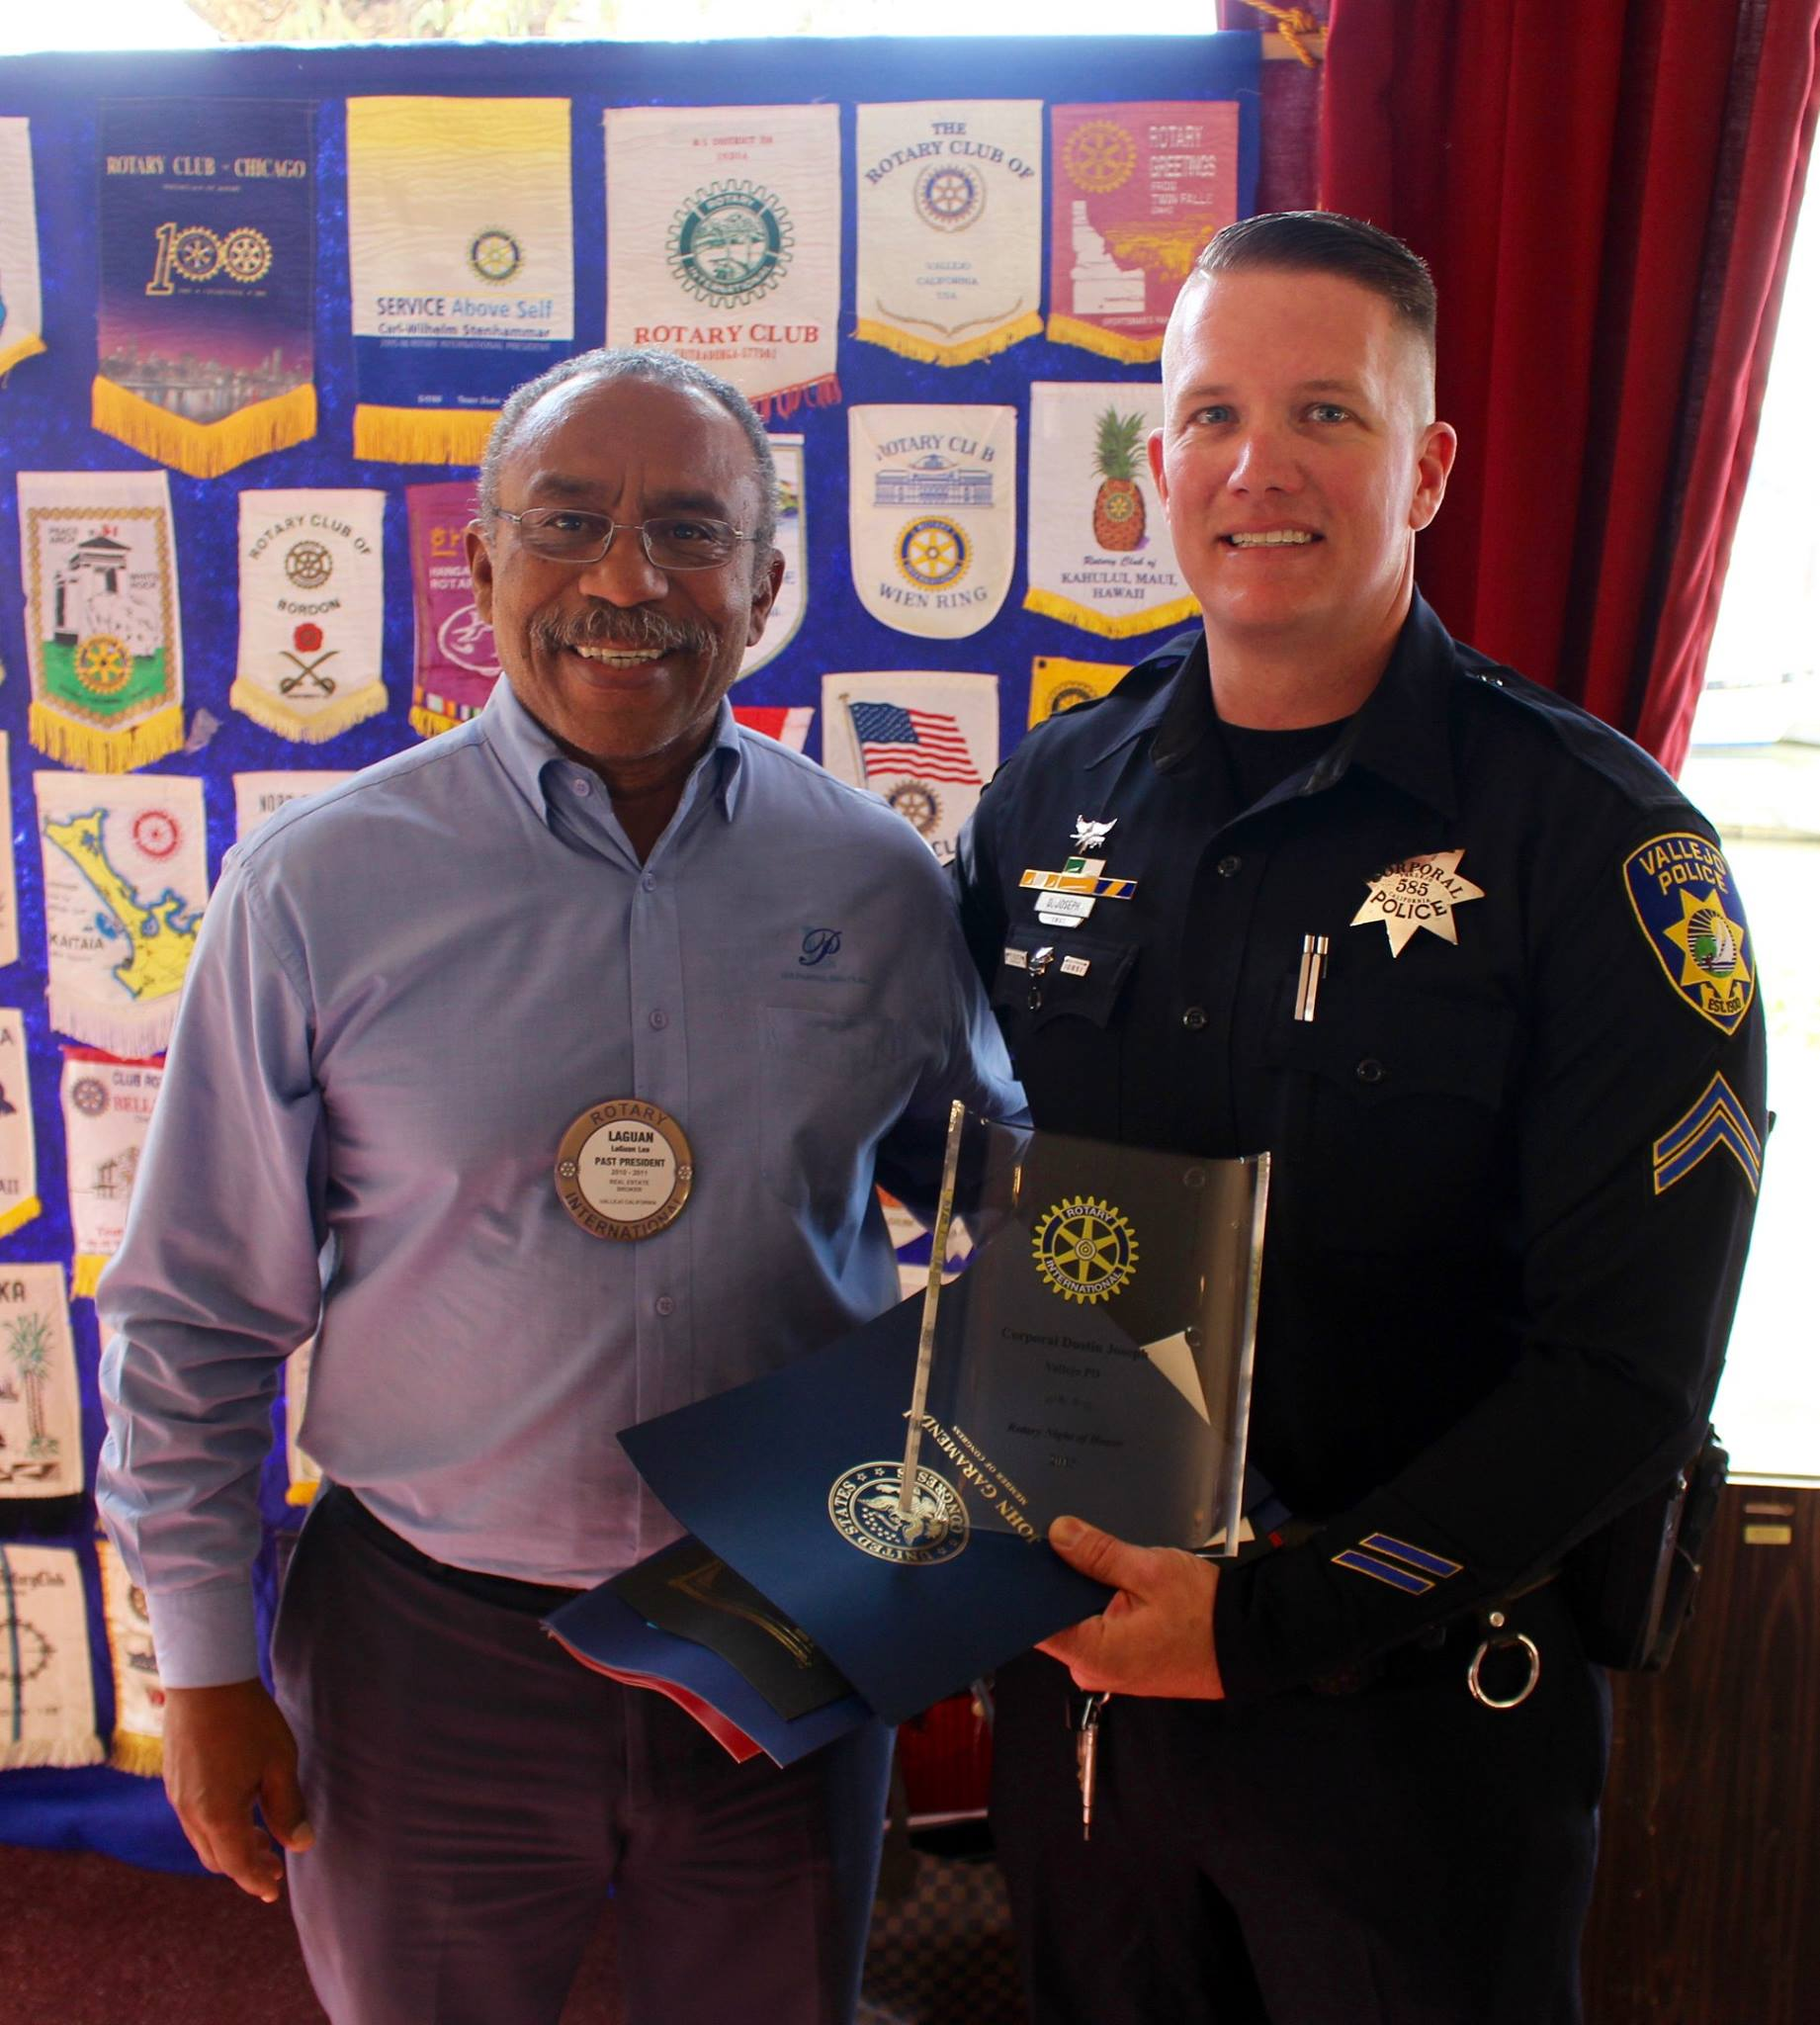 Officer Dustin Joseph received the Vallejo Rotary Club's Officer of the Year award in 2016.